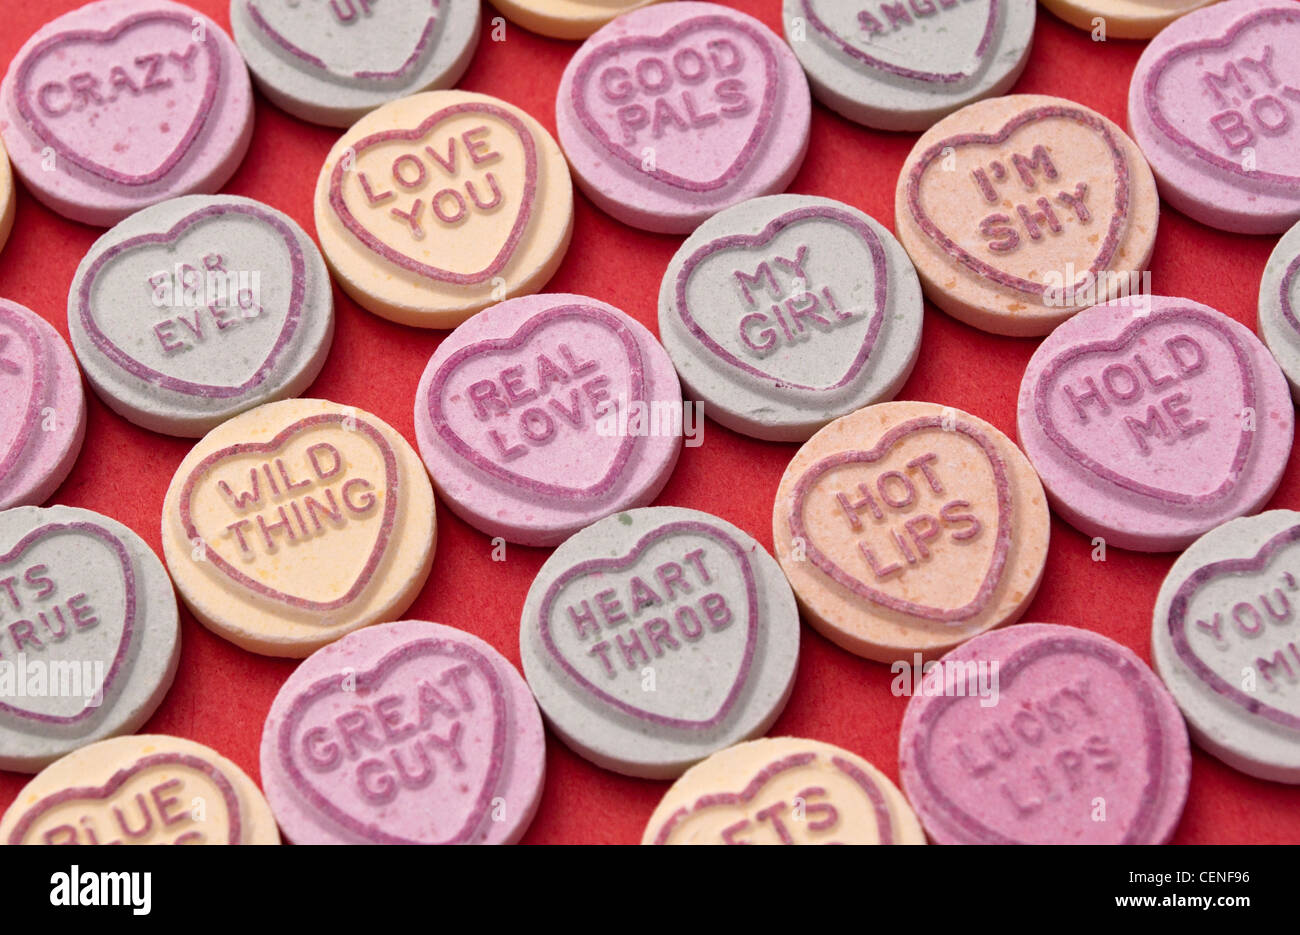 love heart candy sweets on a red background with a variety of stock